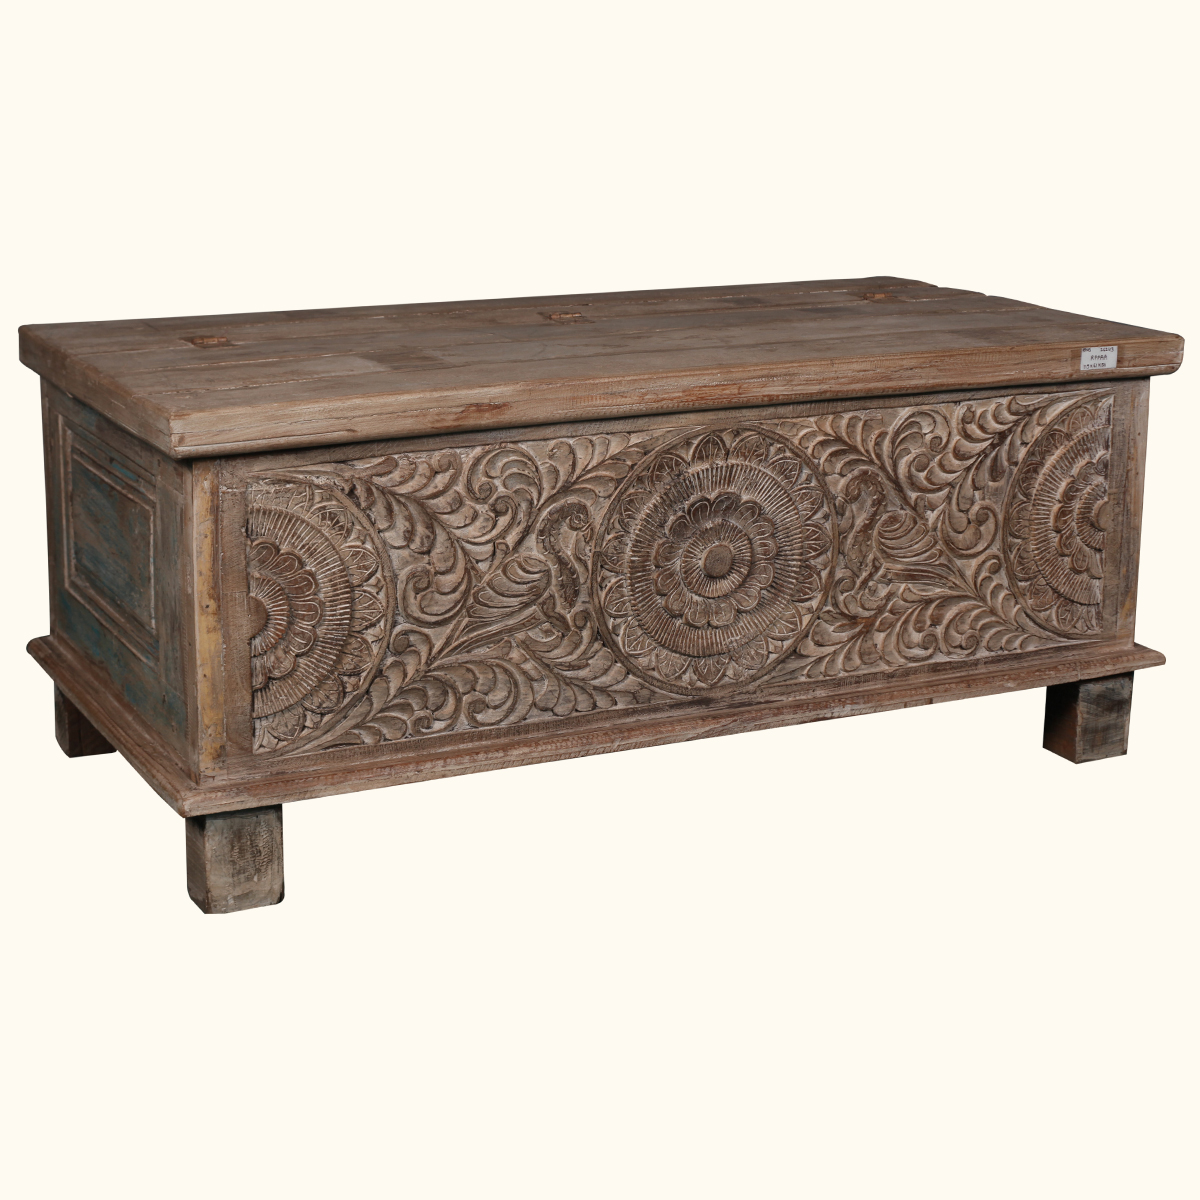 Rustic Hand Carved Reclaimed Wood Coffee Table Trunk